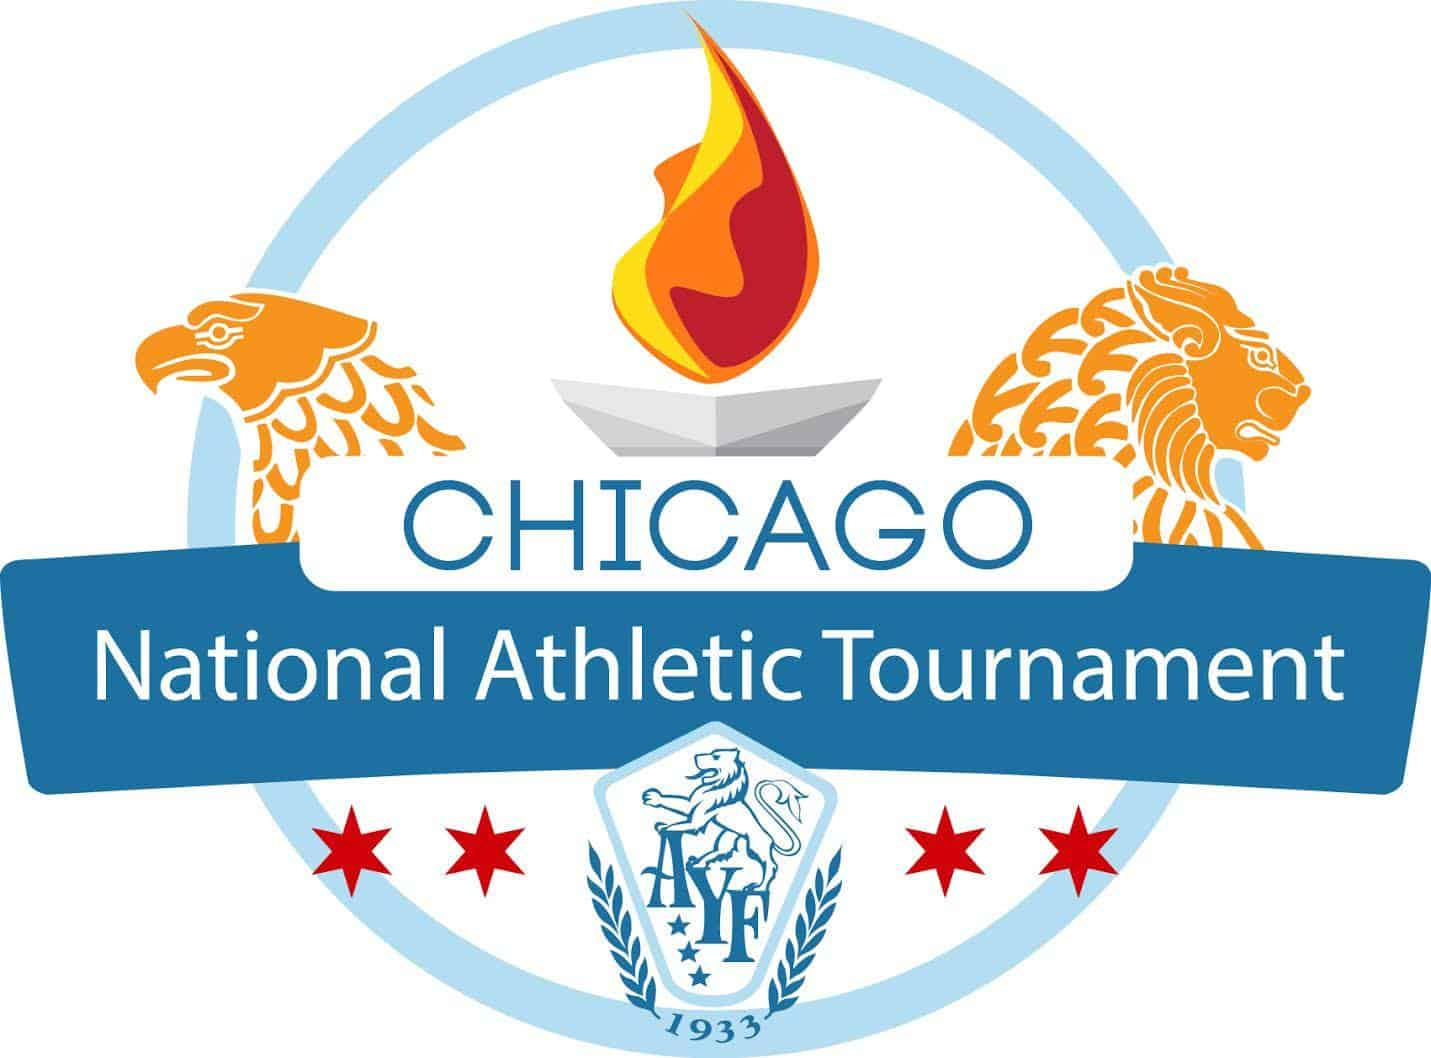 NATS 2016 Chicago